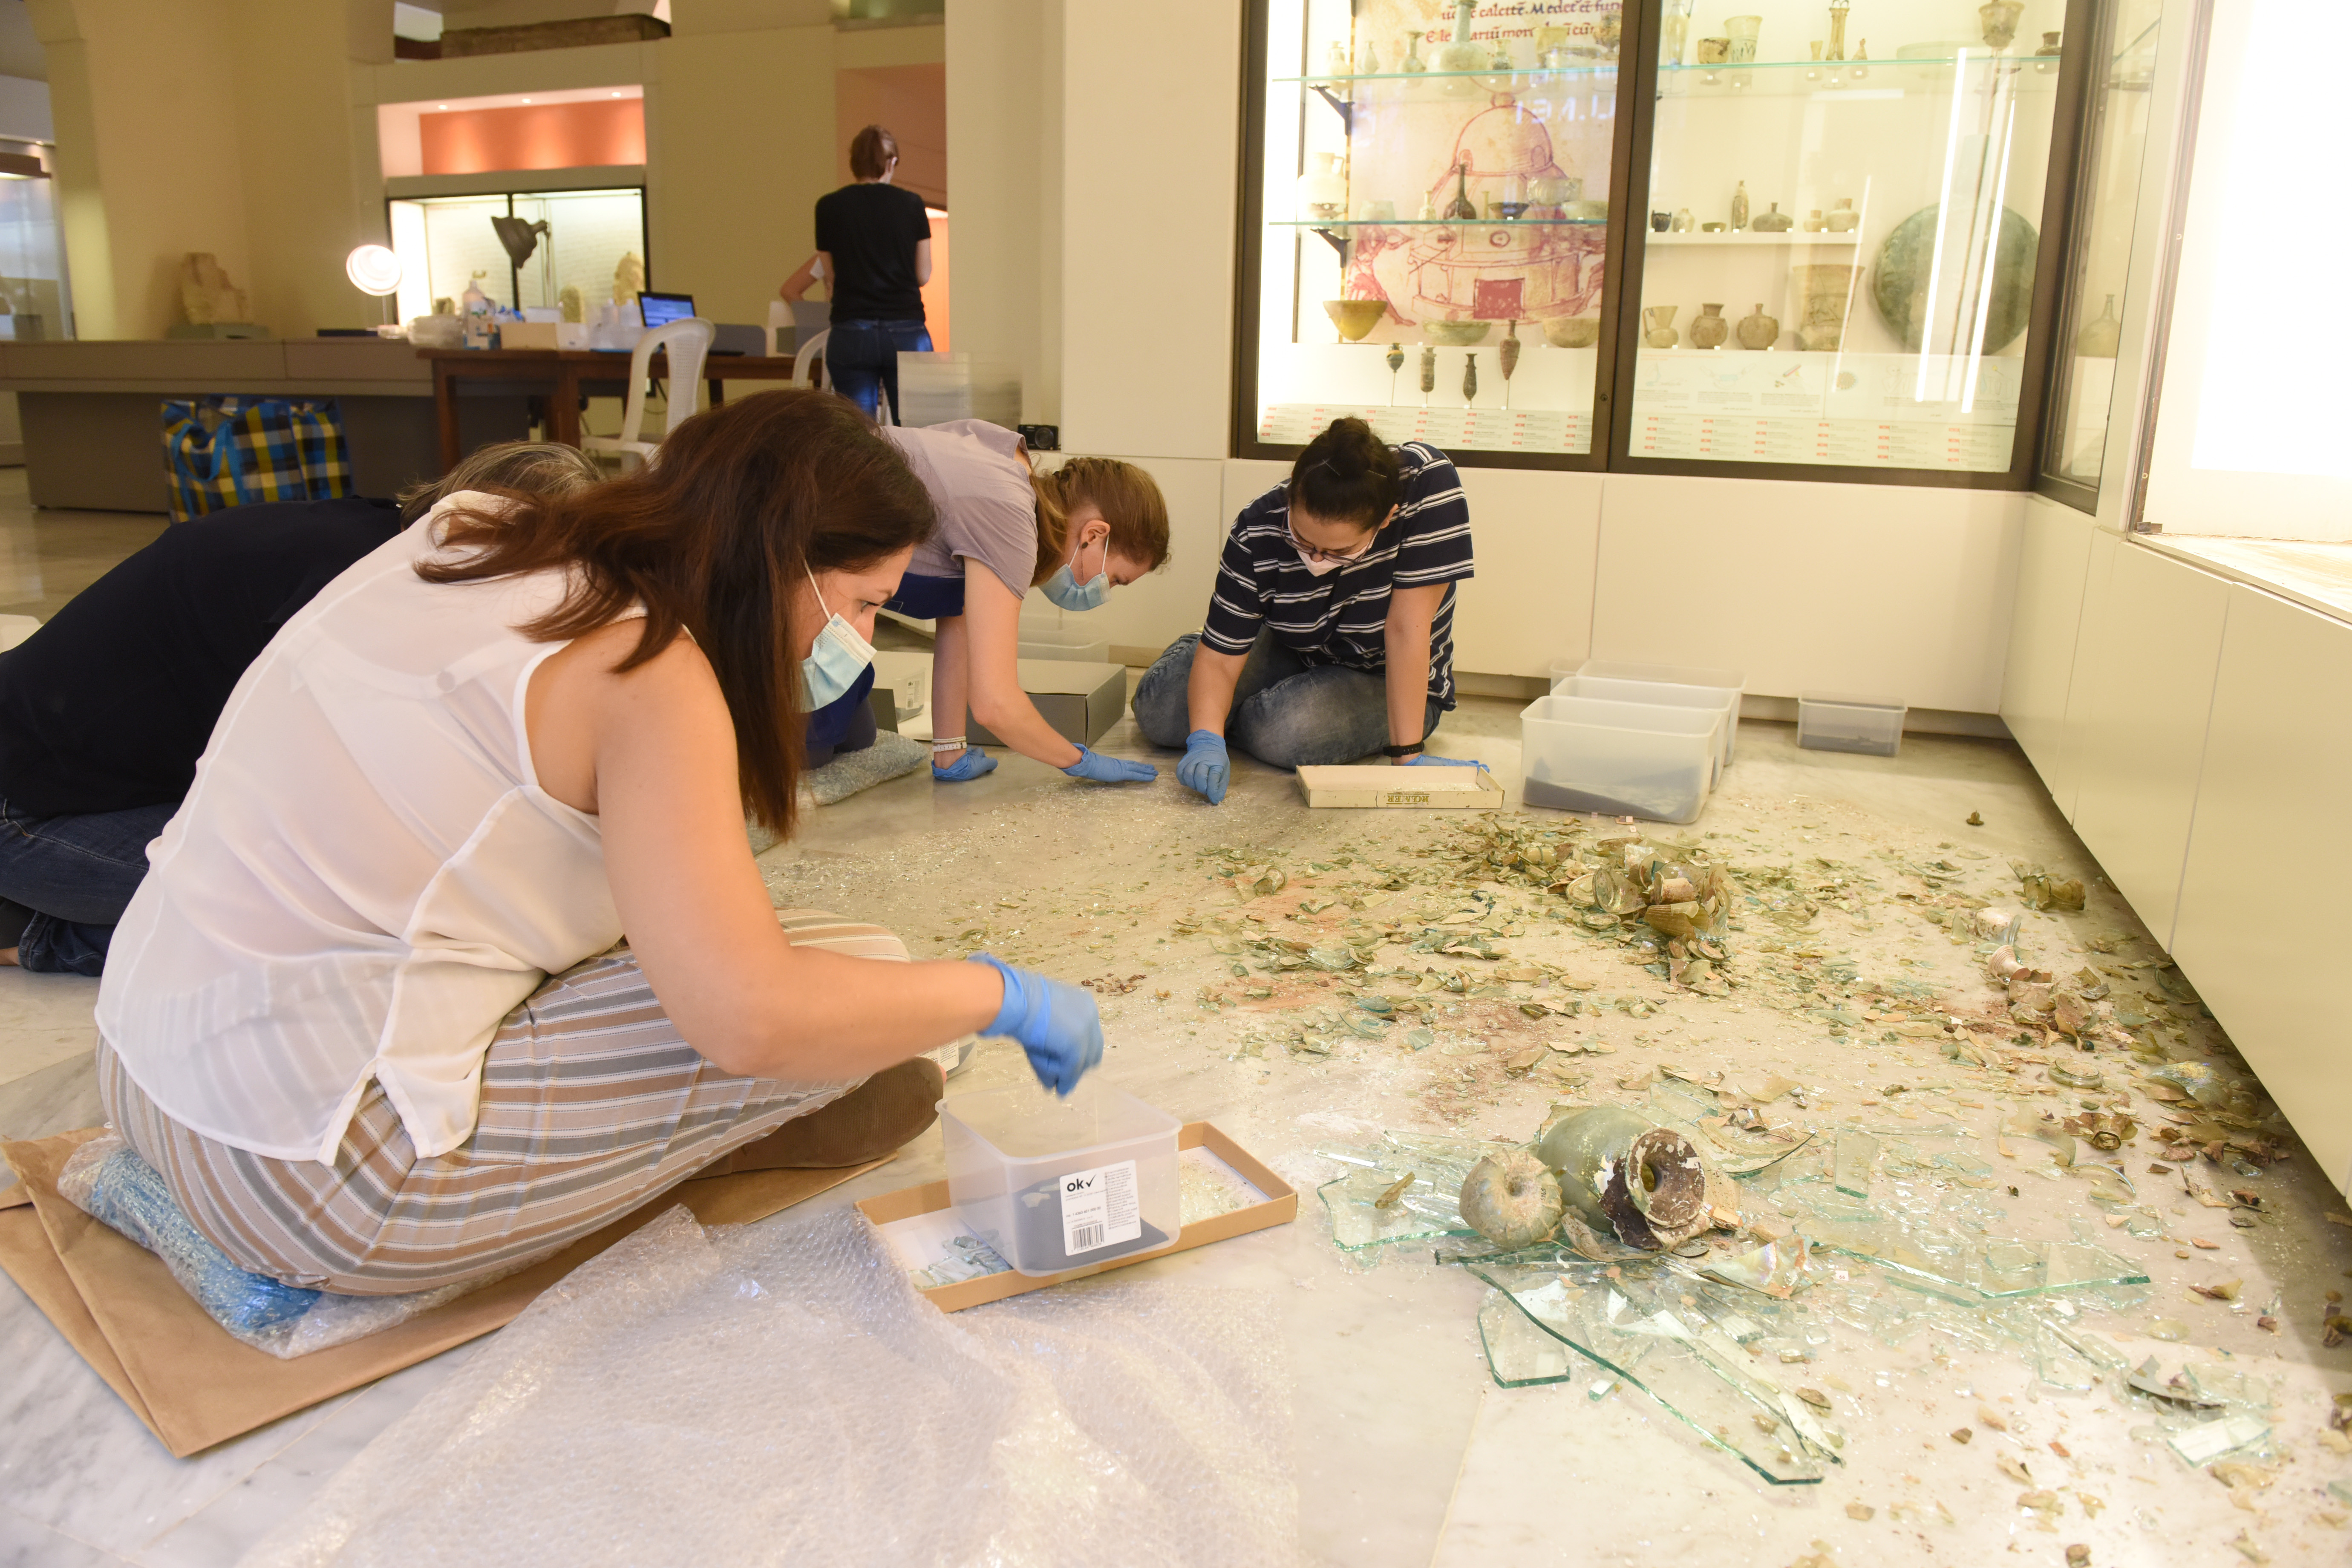 Conservators and student volunteers retrieve fragments of broken glassvessels from amongst the shattered glass from the display case and nearby windows at the Archaeological Museum, AUB. Courtesyof the AUB Office of Communications and Archaeological Museum.